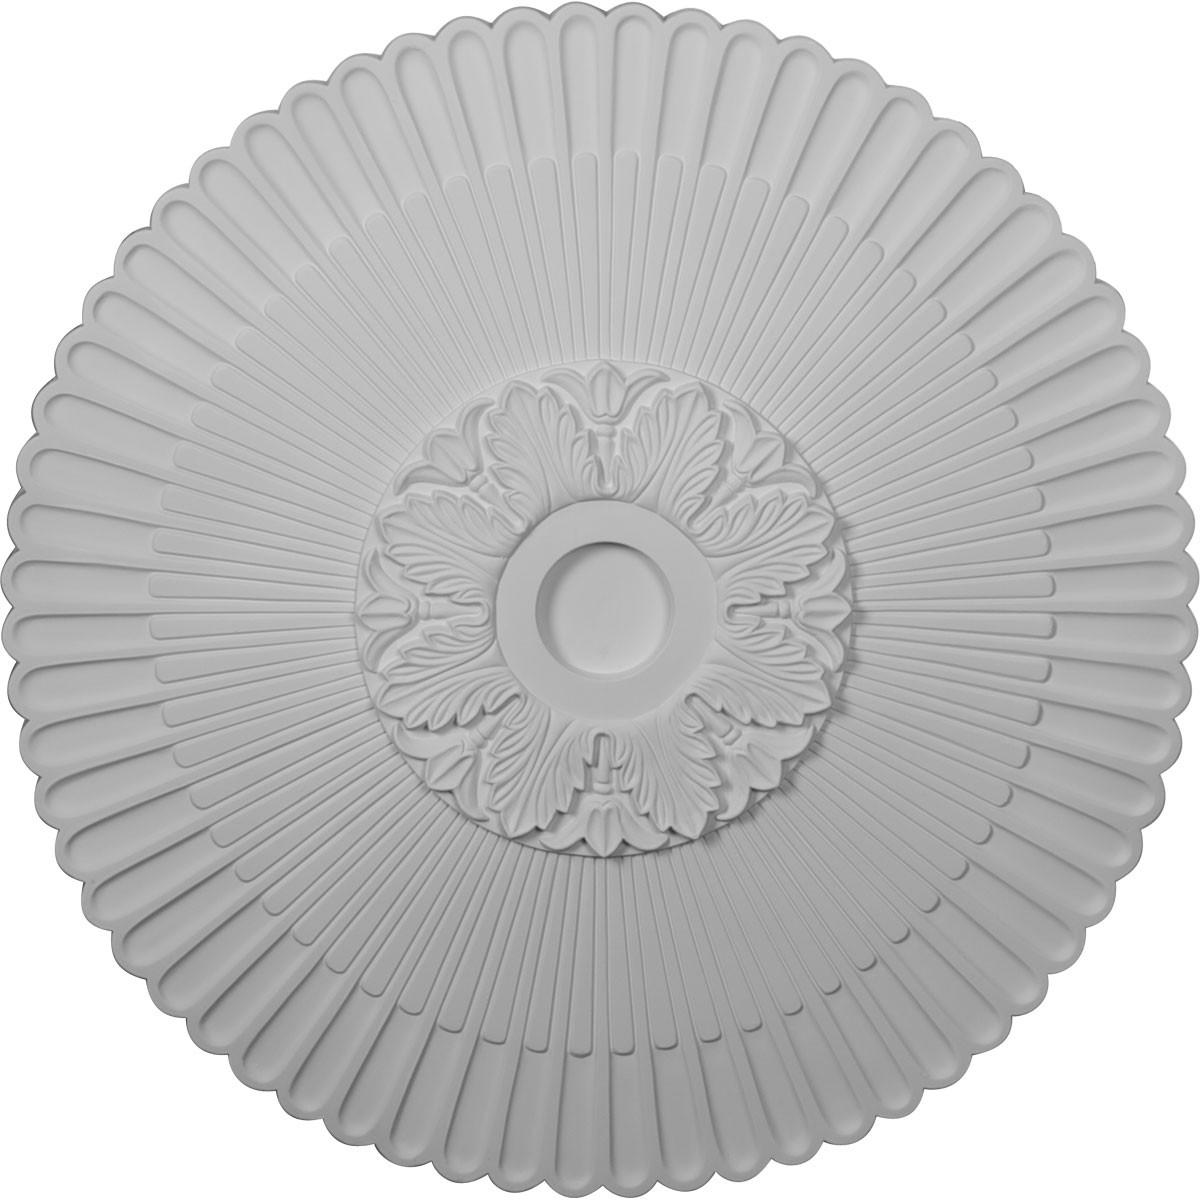 """EM-CM36ME - 36 1/4""""OD x 1 7/8""""P Melonie Ceiling Medallion (Fits Canopies up to 6 1/4"""")"""